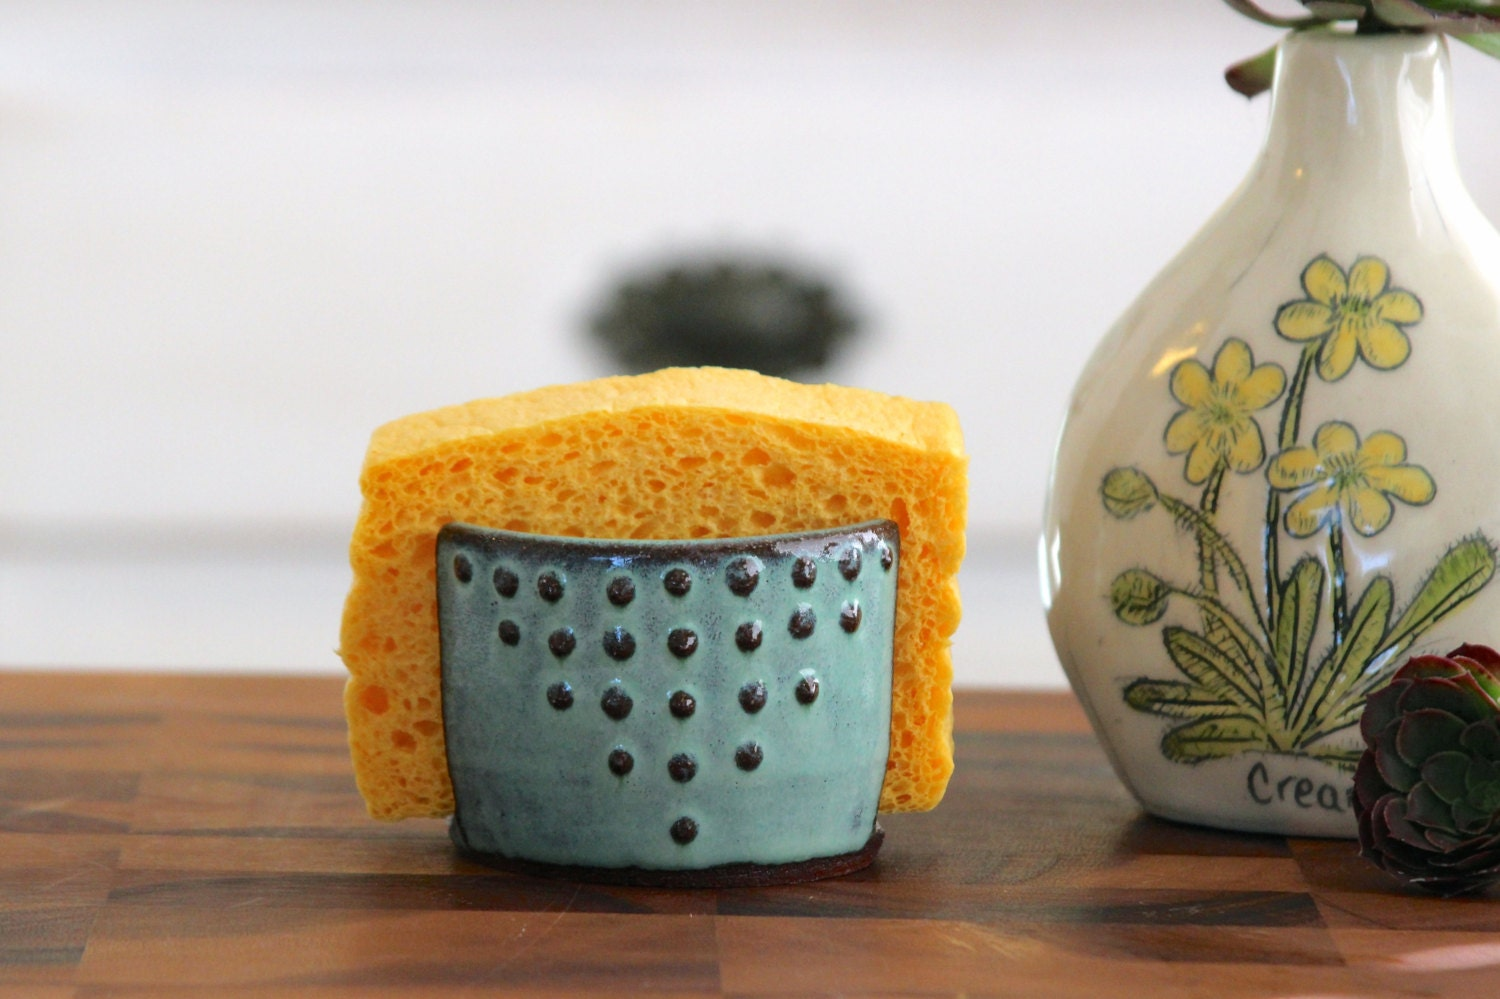 to round kitchen lisa vaaka products fit magisso sink sponge also will right cc the neat holder